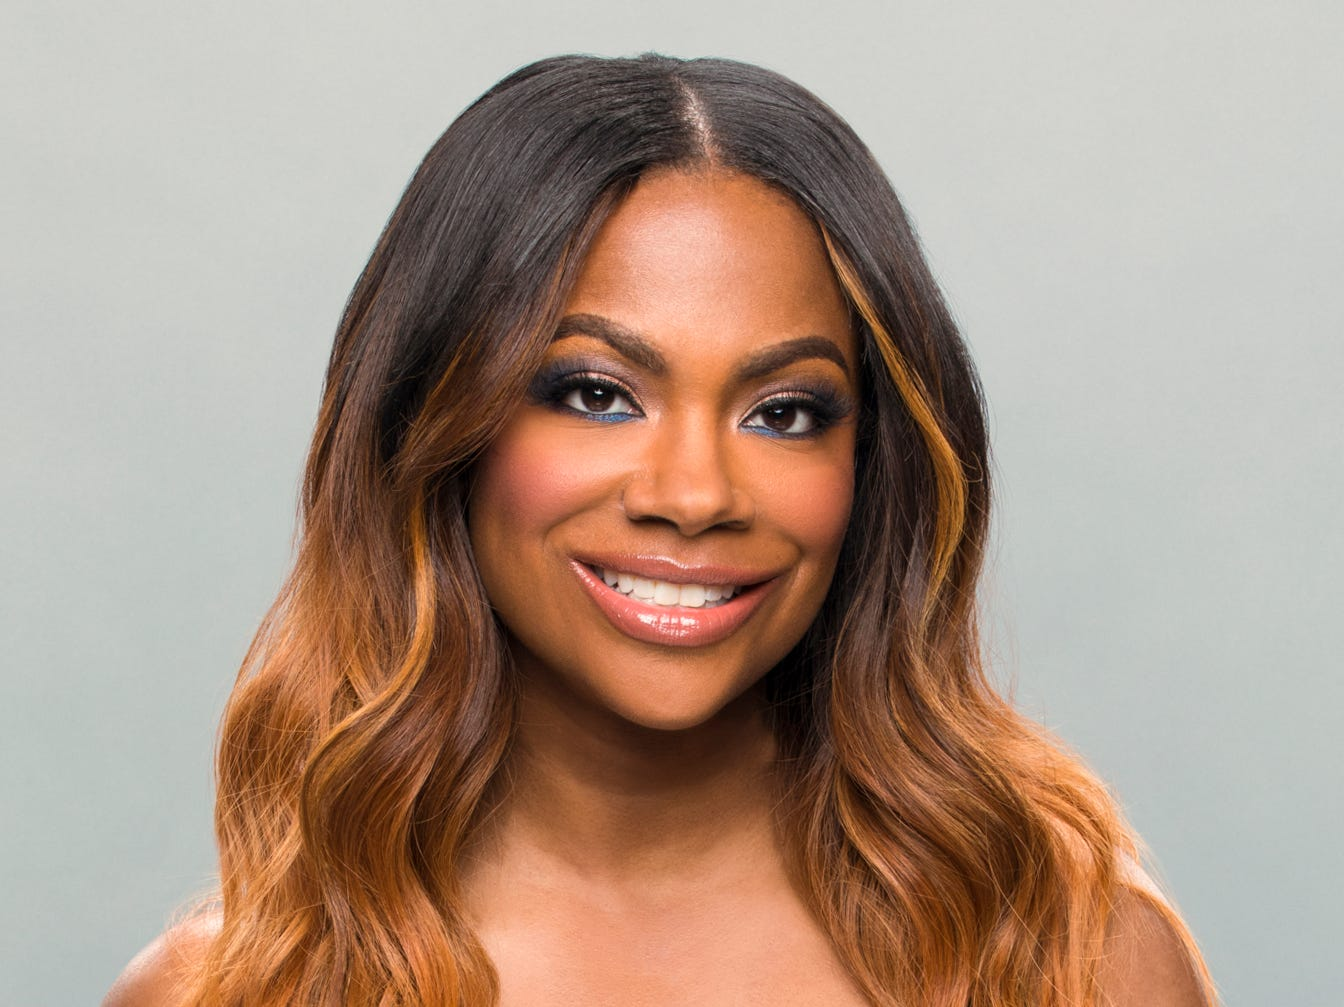 Kandi Burruss to participate in the second season of BIG BROTHER: CELEBRITY EDITION. BIG BROTHER: CELEBRITY EDITION launches with a two-night premiere event Monday, Jan. 21 (8:00-9:00 PM, ET/PT) and Tuesday, Jan. 22 (8:00-9:00 PM, ET/PT) on the CBS Television Network.  Photo: Monty Brinton/CBS  ©2018 CBS Broadcasting, Inc. All Rights Reserved